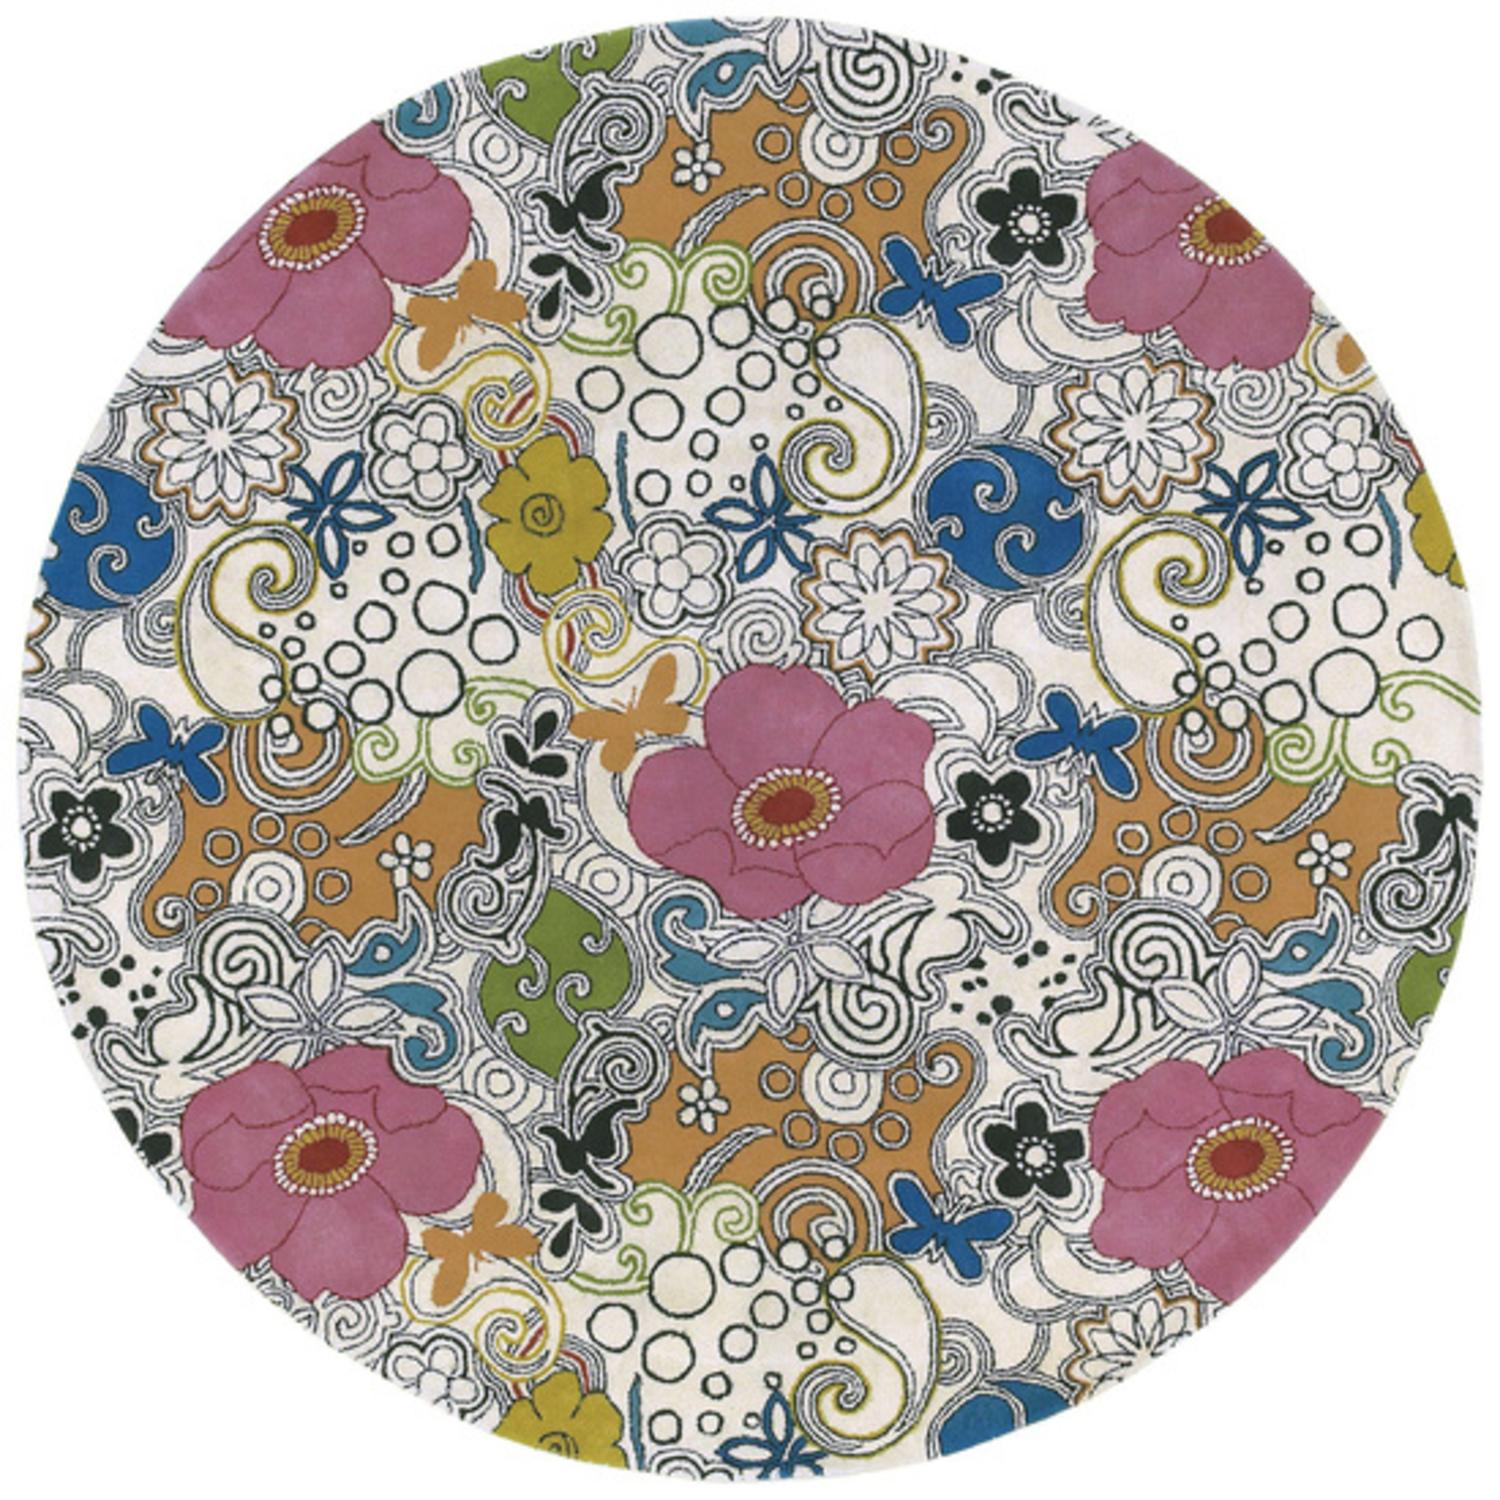 5.75' Hippie-Do-Dad Rose Floral Red and Retro Sienna Round Wool Area Rug